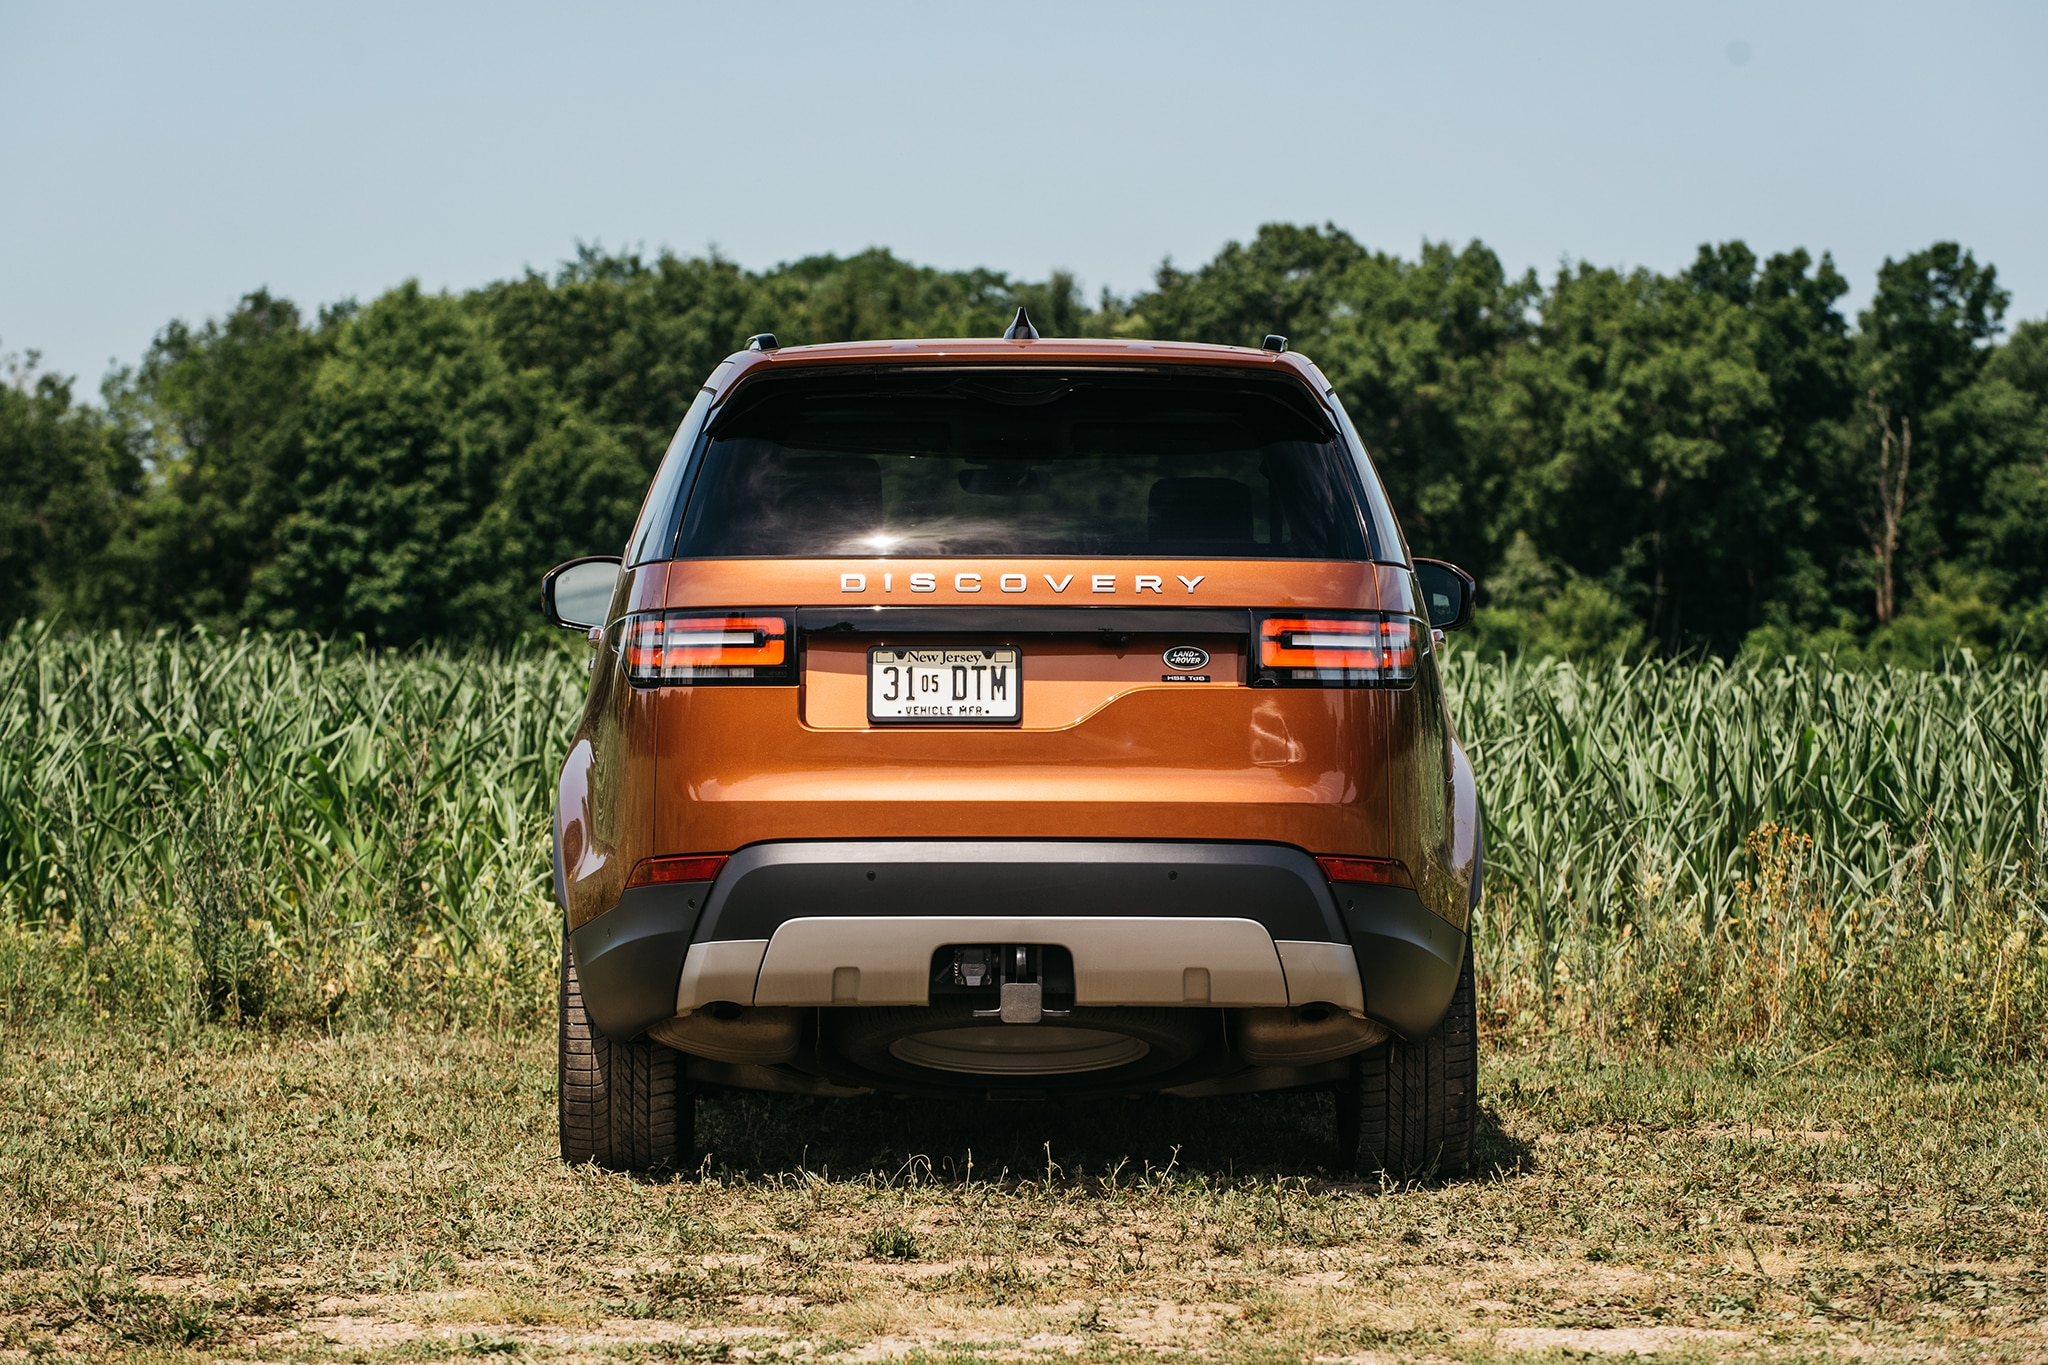 2017 Land Rover Discovery Td6 HSE Rear View